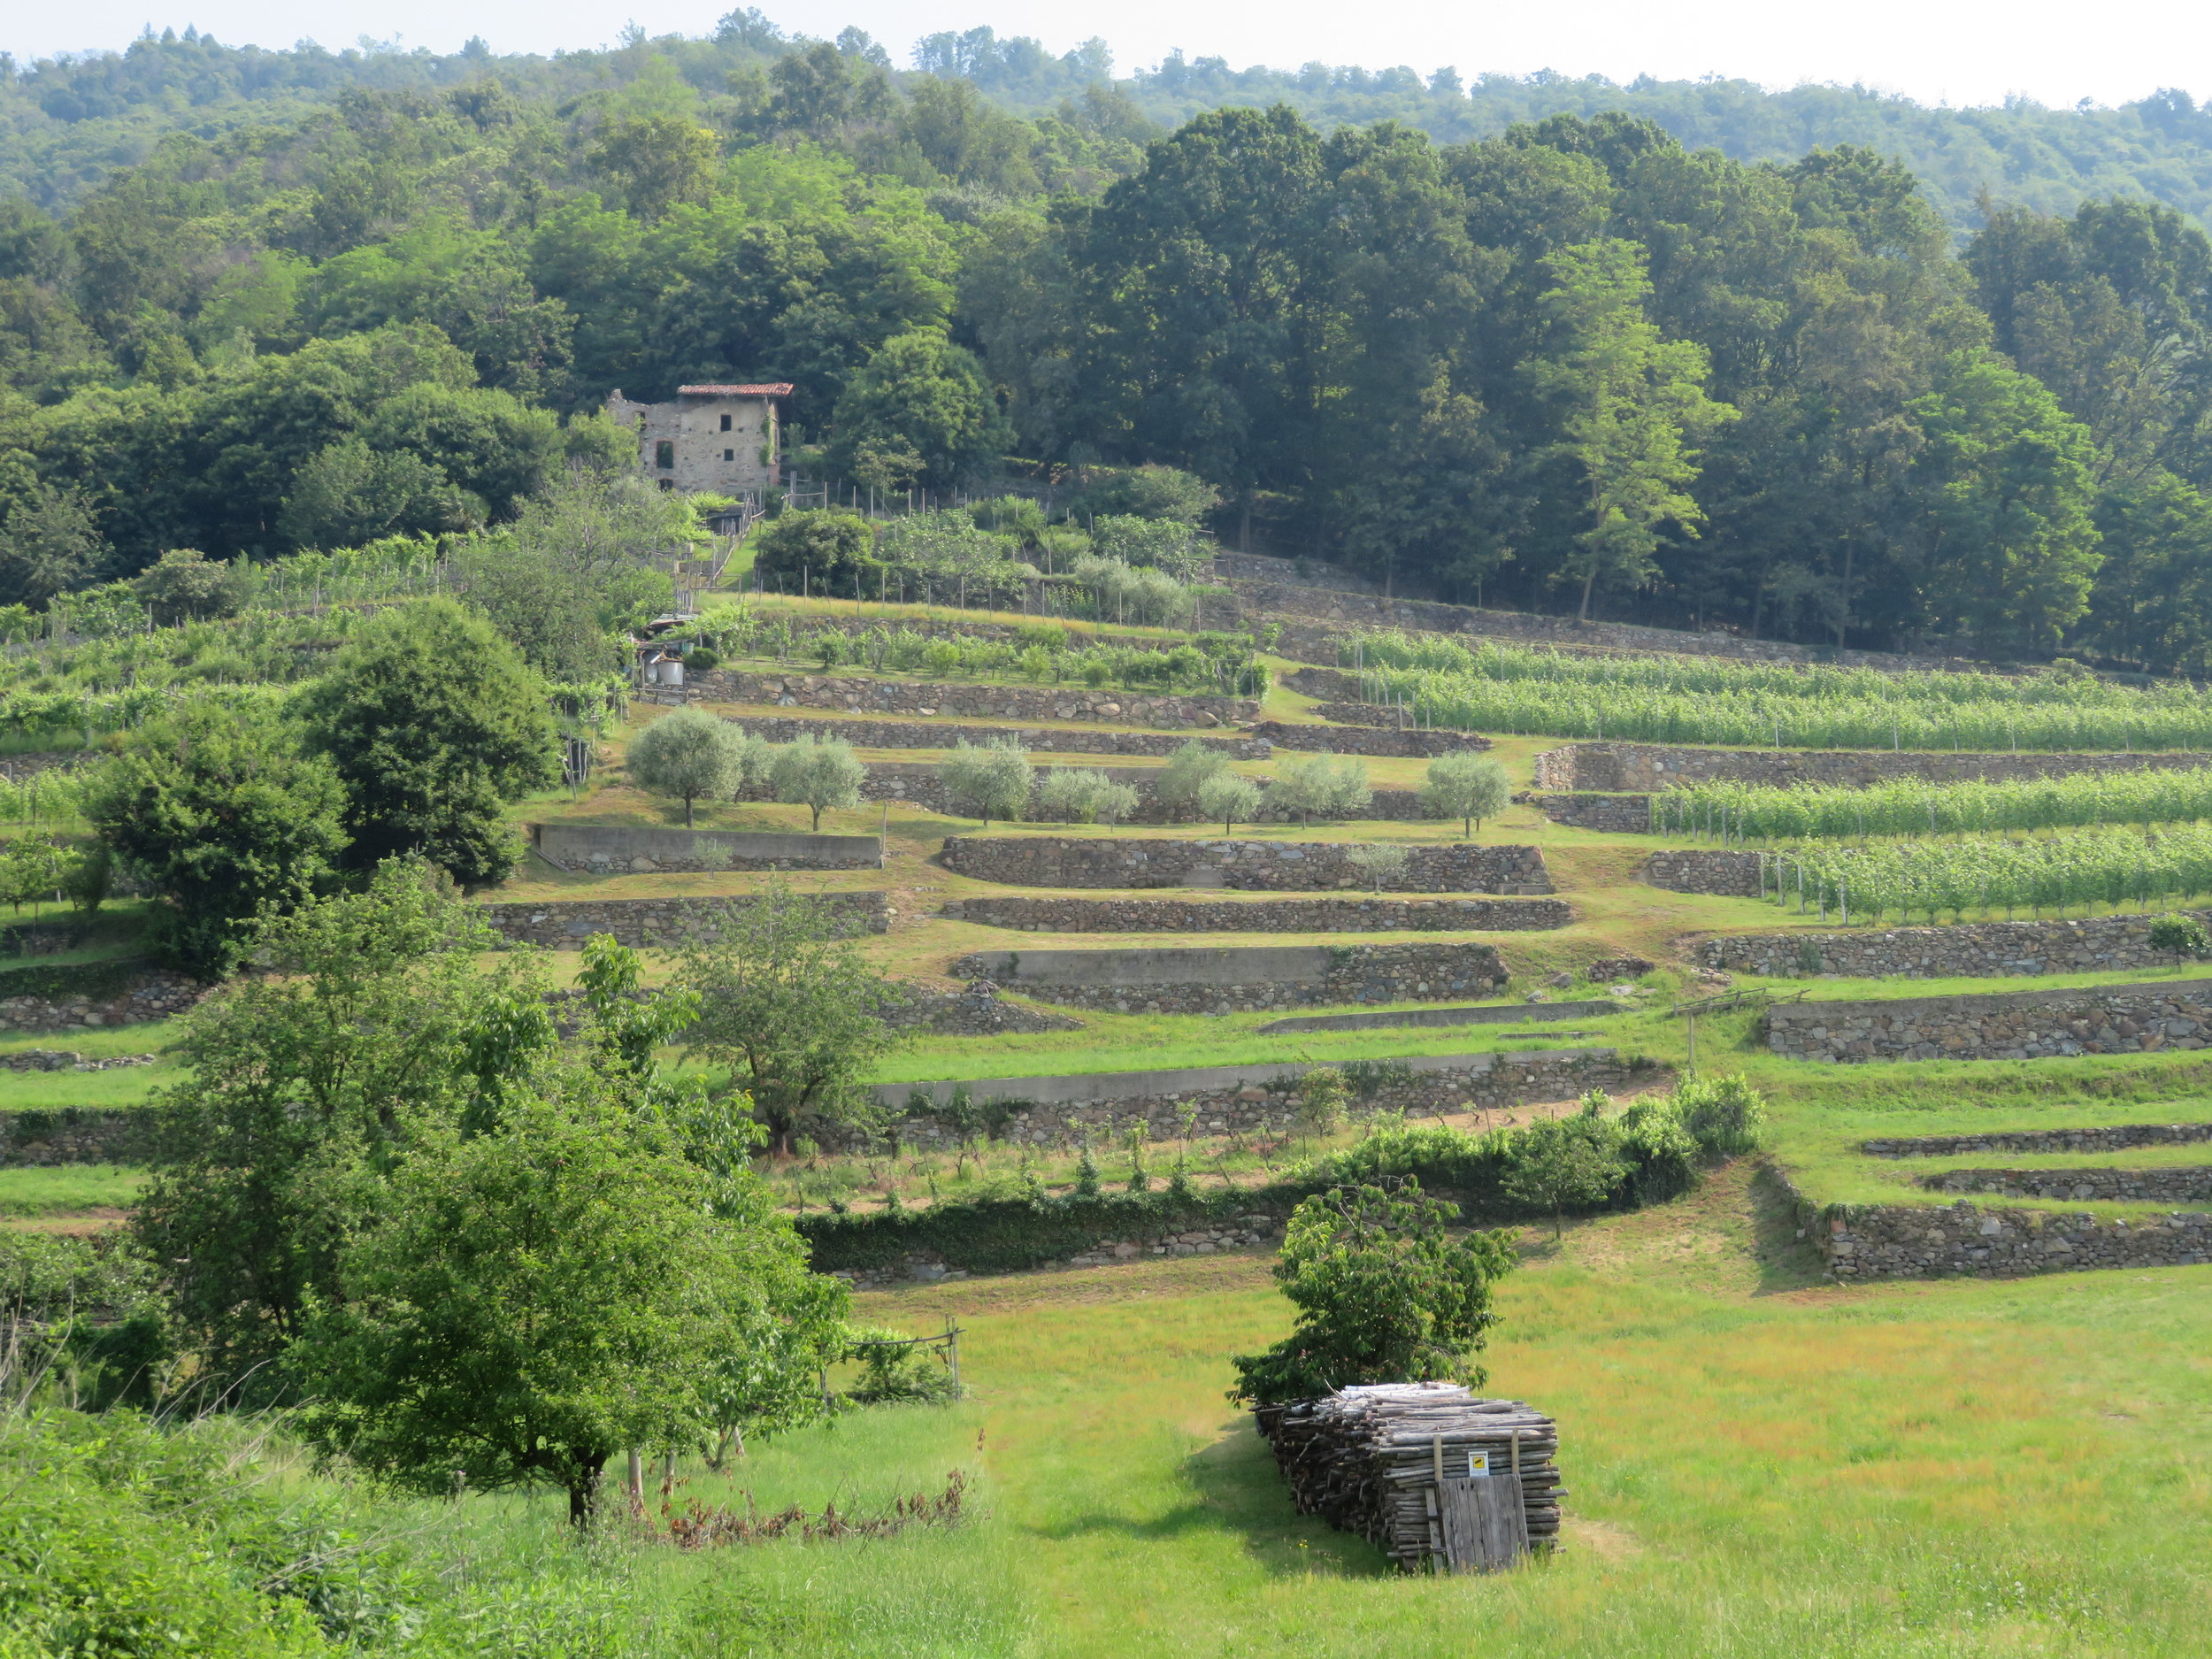 Terracing takes advantage of every bit of arable land in this hilly region.